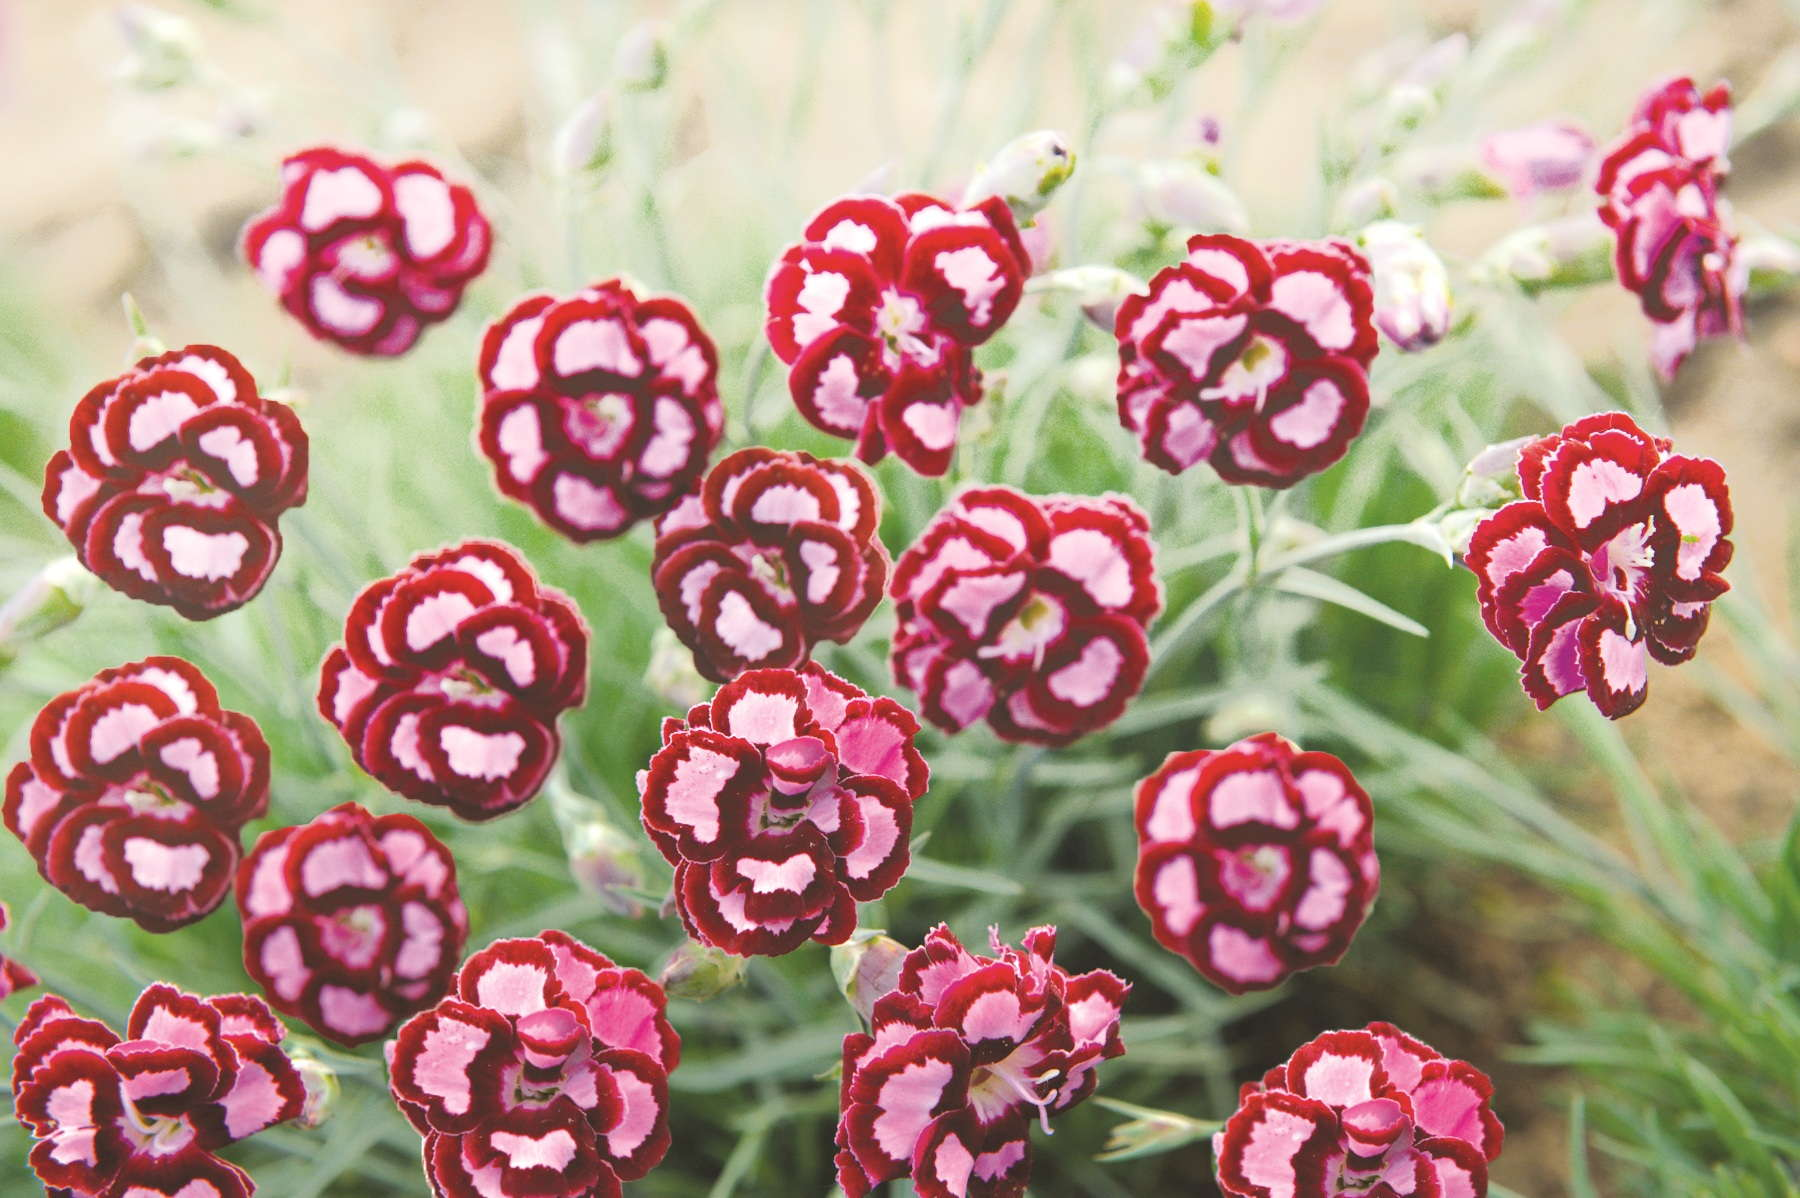 Fruit Punch Dianthus Kicks Up Proven Winners' Product Lines